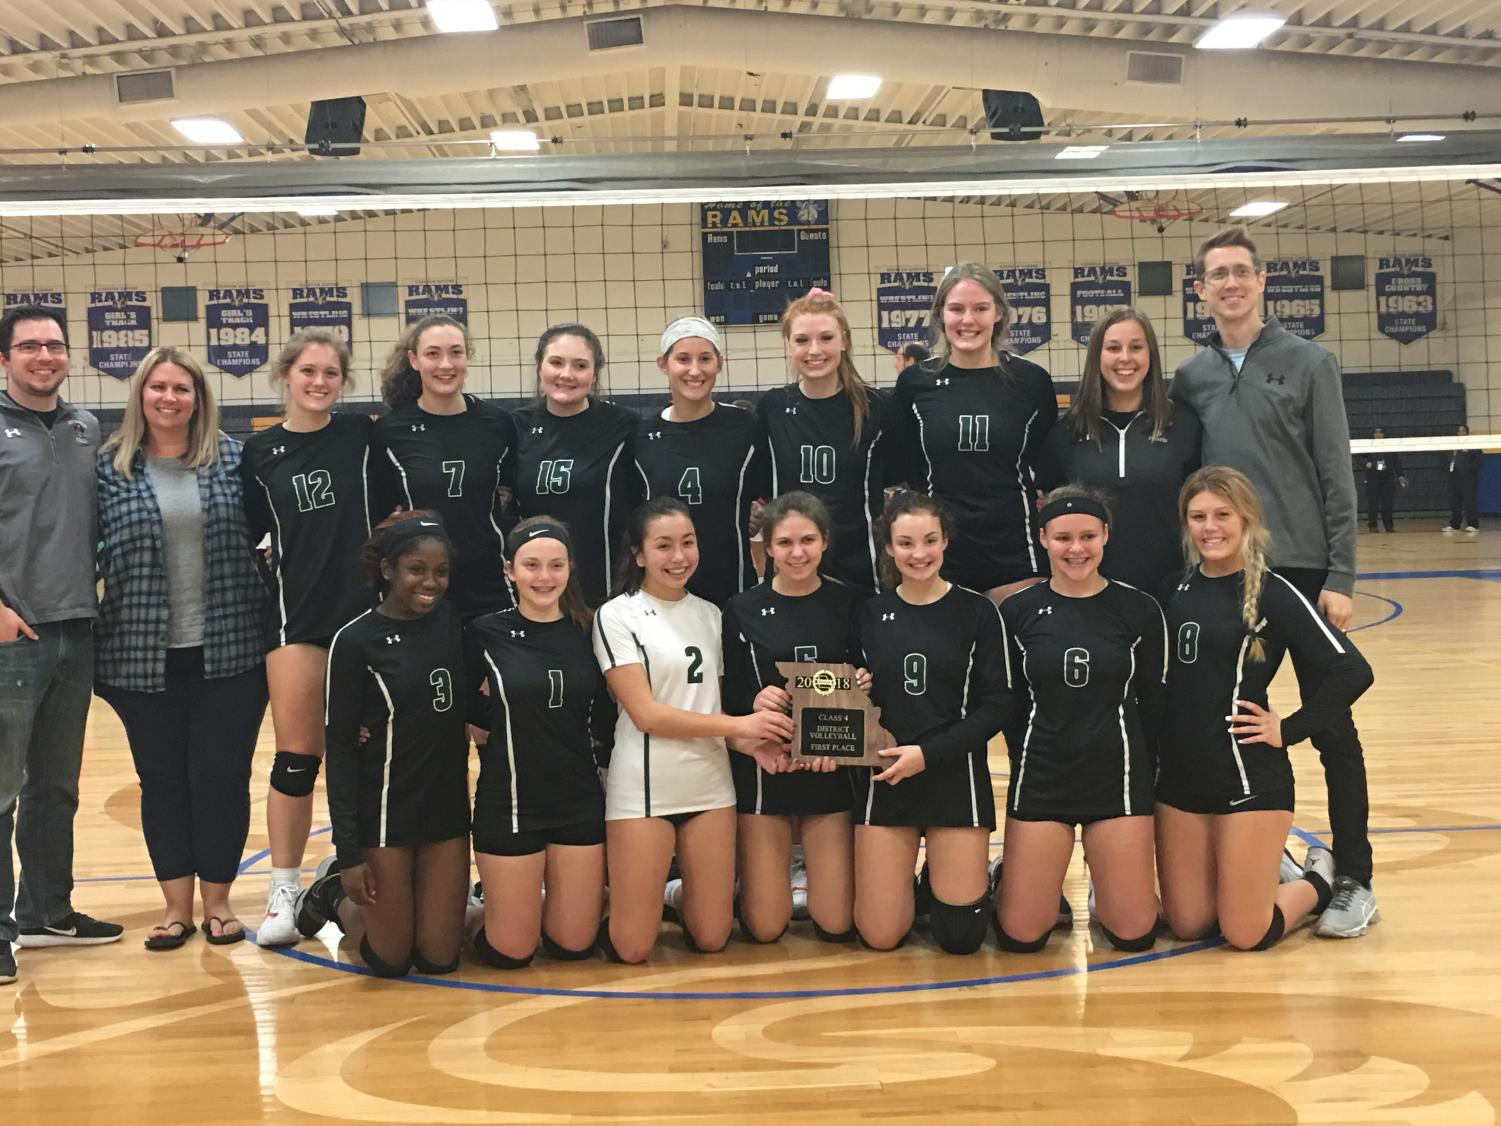 The girls' volleyball team holds the Class 4 District 5 championship trophy.